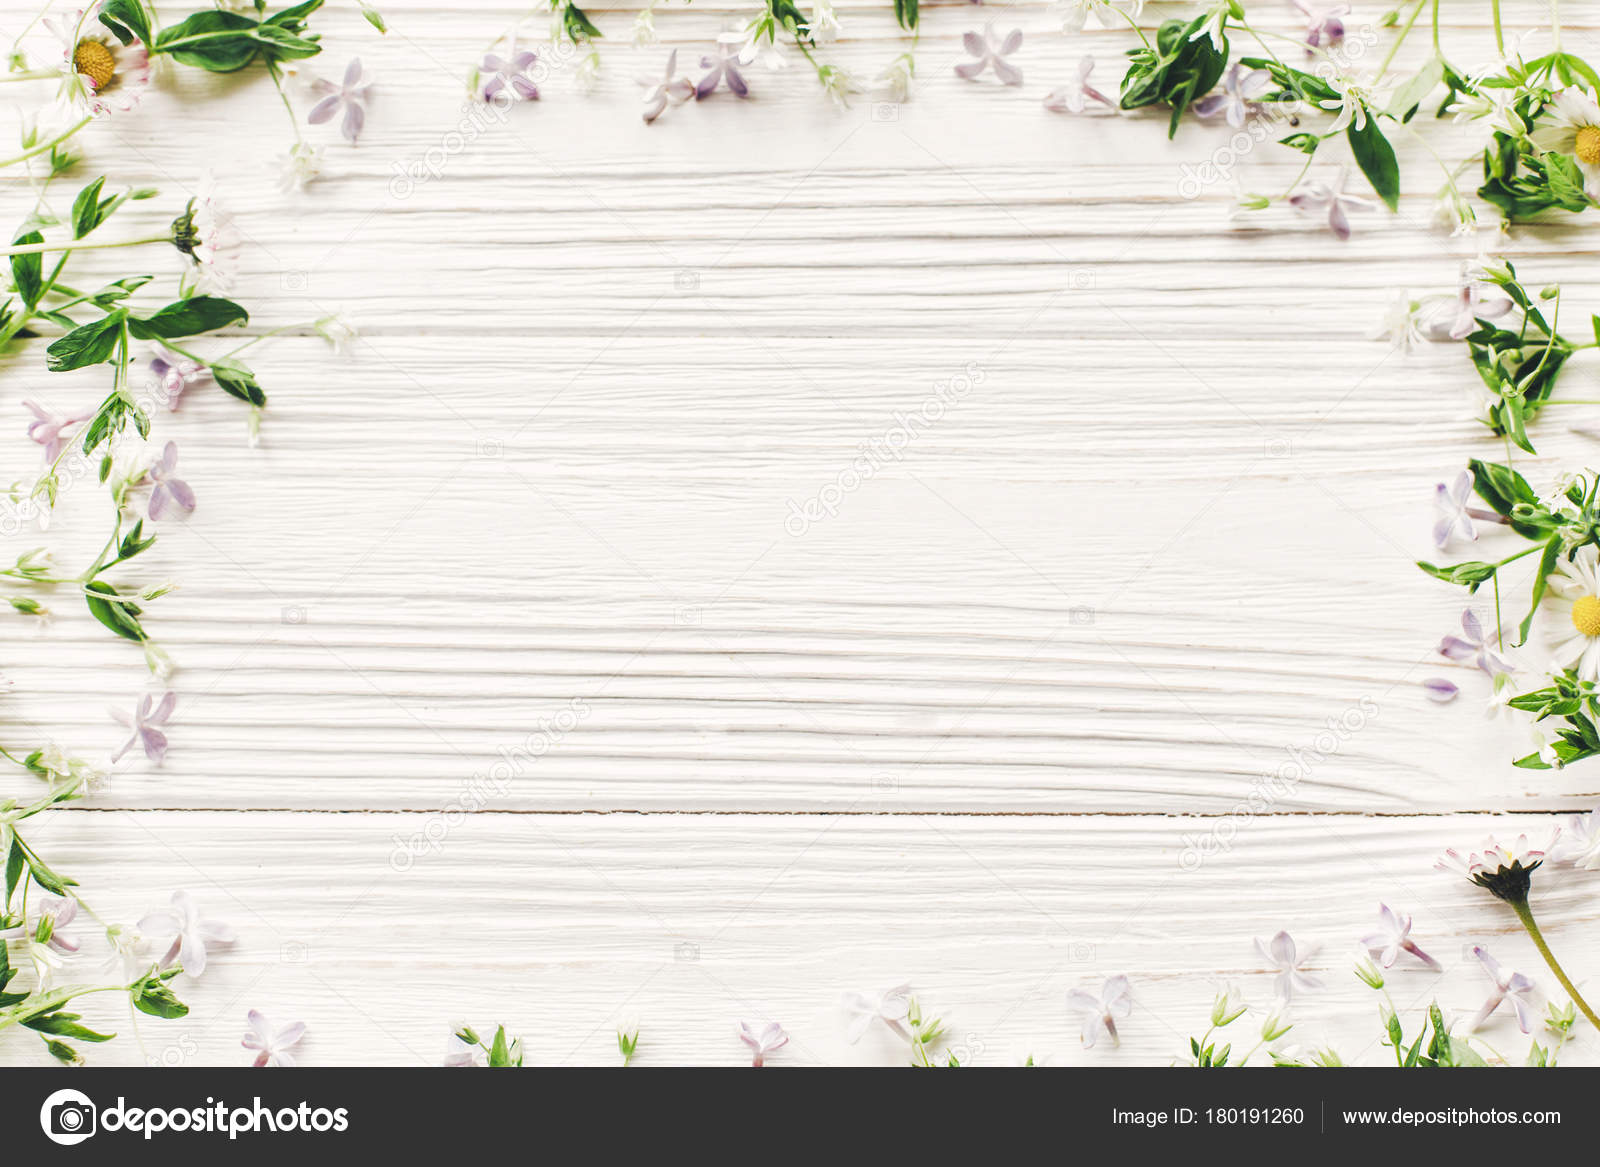 Fresh Daisy Lilac Flowers Green Herbs Frame White Wooden Rustic